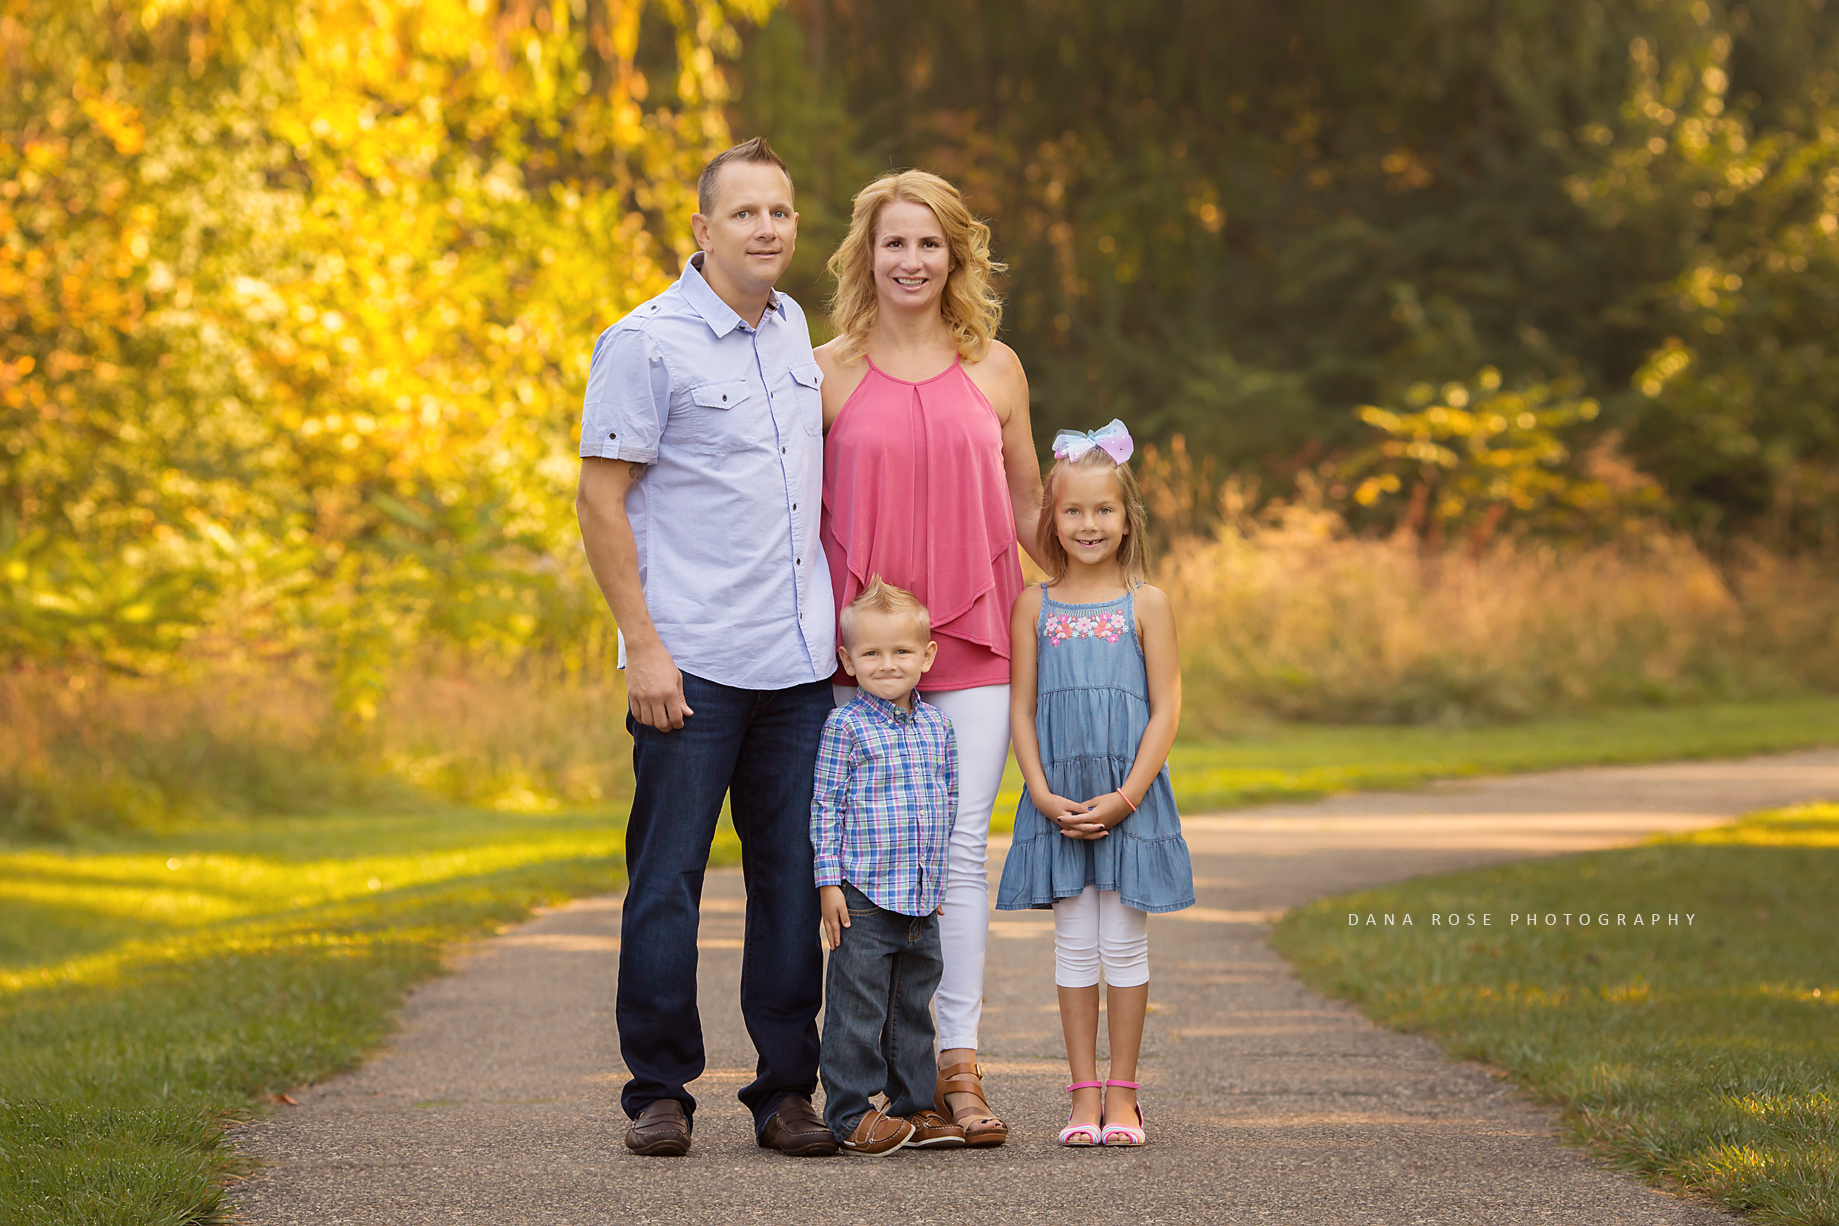 Dana Rose Photography Family